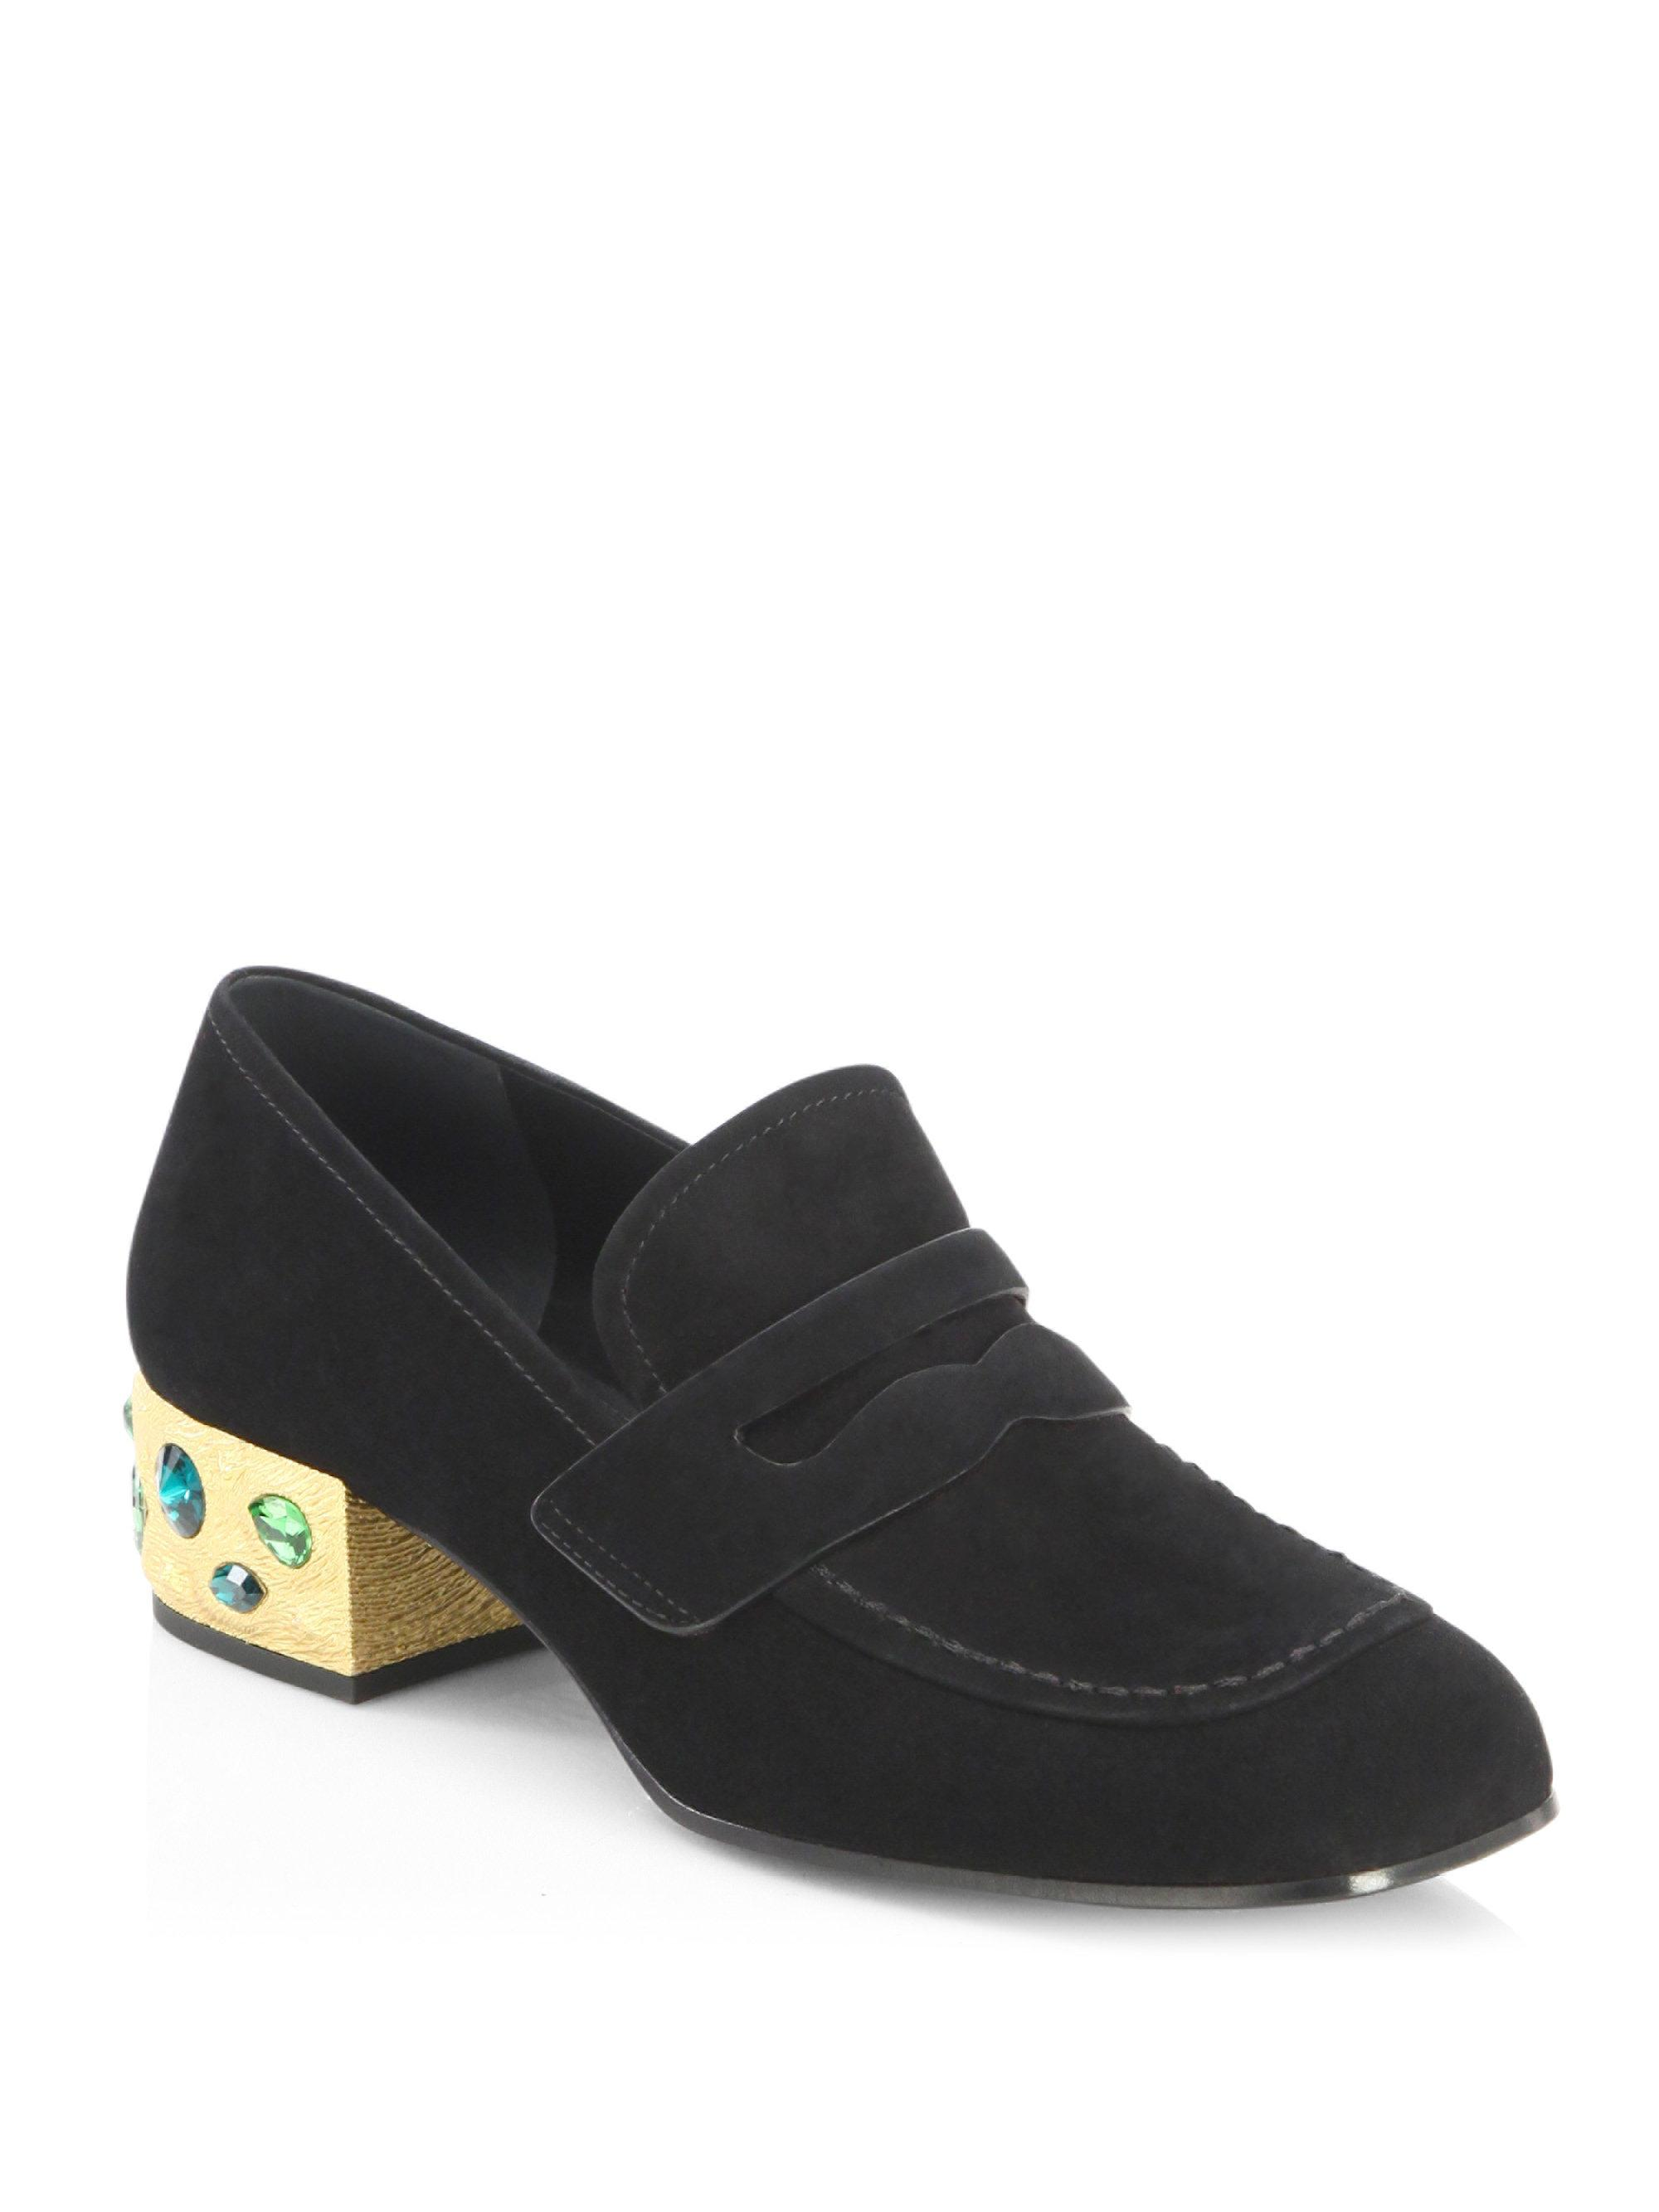 6c90d2e210a Lyst - Prada Jewel Heel Suede Loafer Pumps in Black